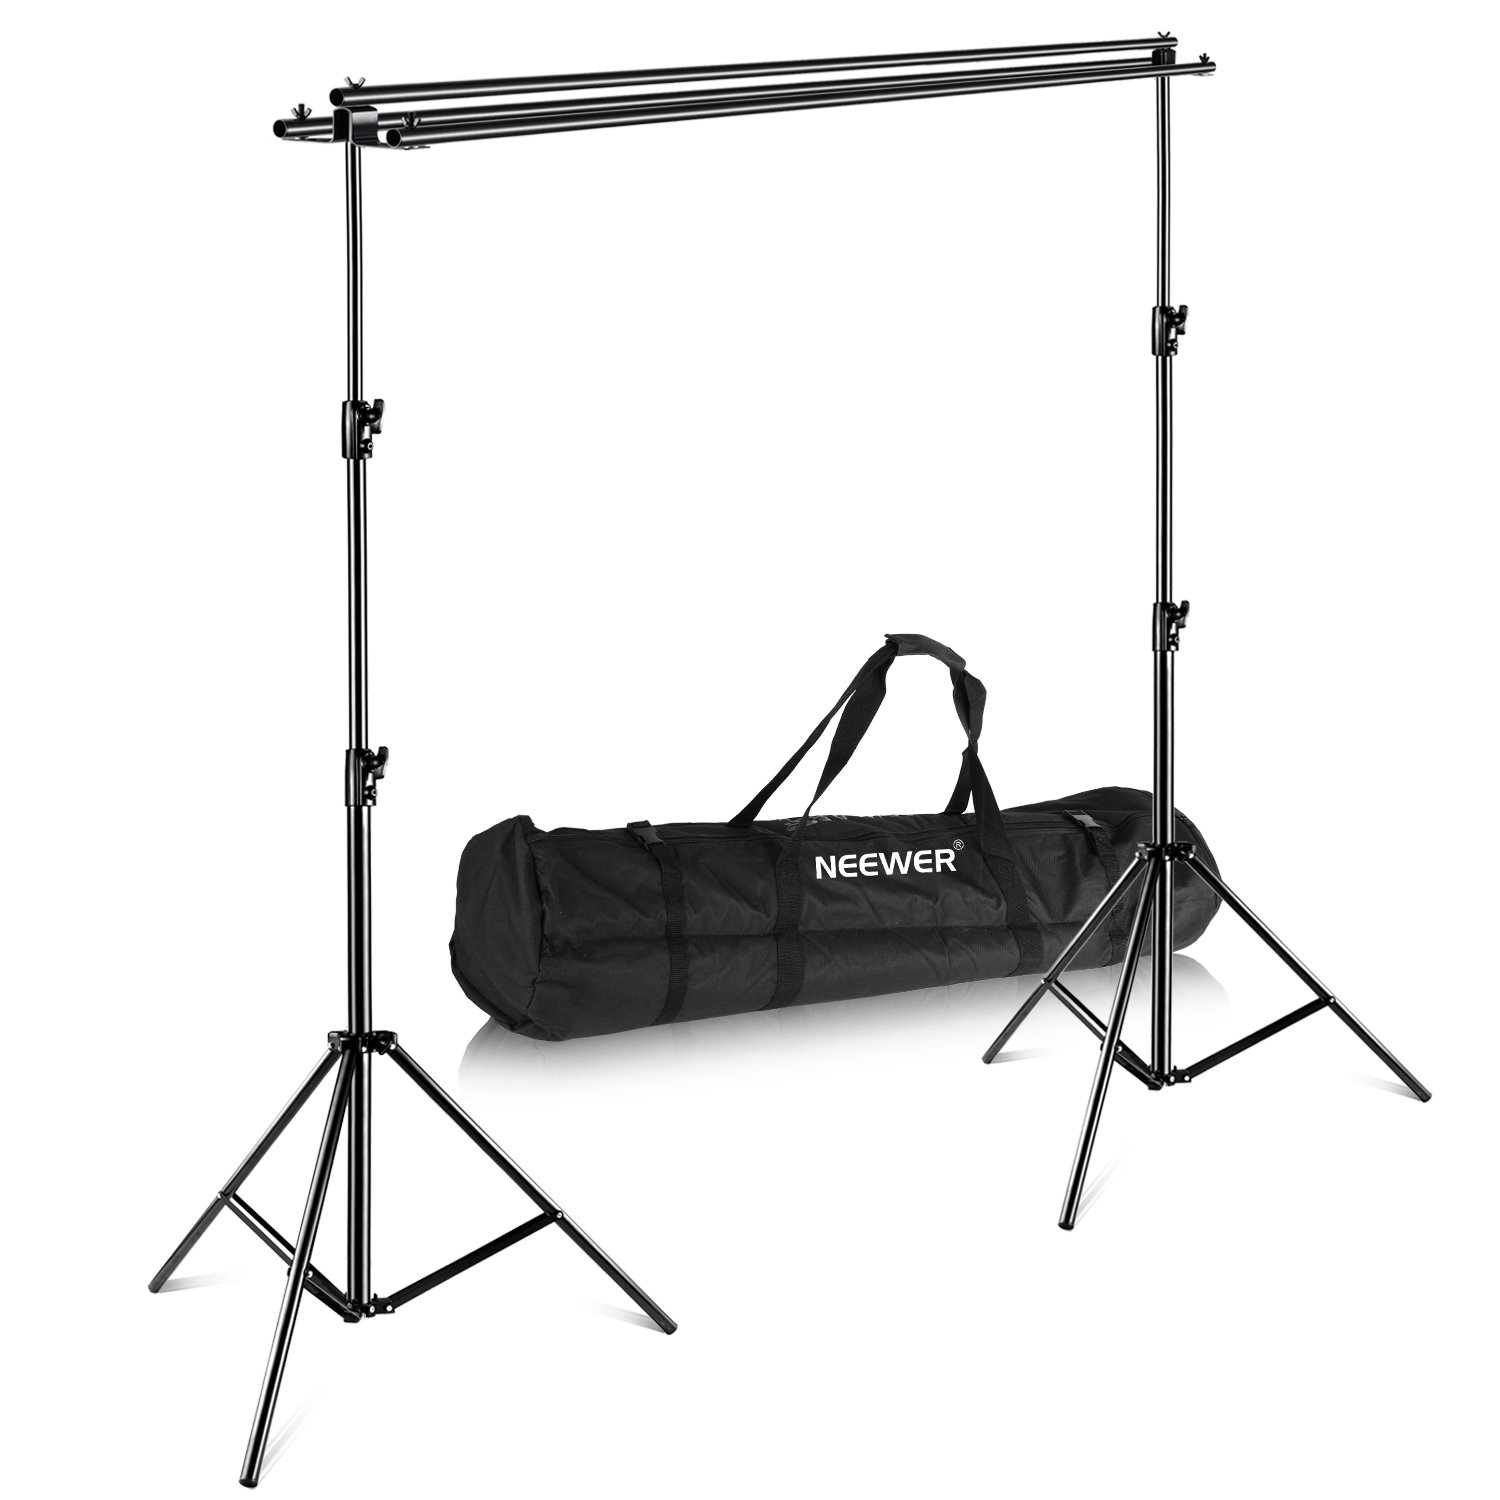 Neewer Photography Backdrop Support System with Carrying Case - Maximum 8.8x10 feet/2.7x3 meters (Height x Width) for Muslin, Paper and Canvas Backdrops for Photo Video Studio Shooting